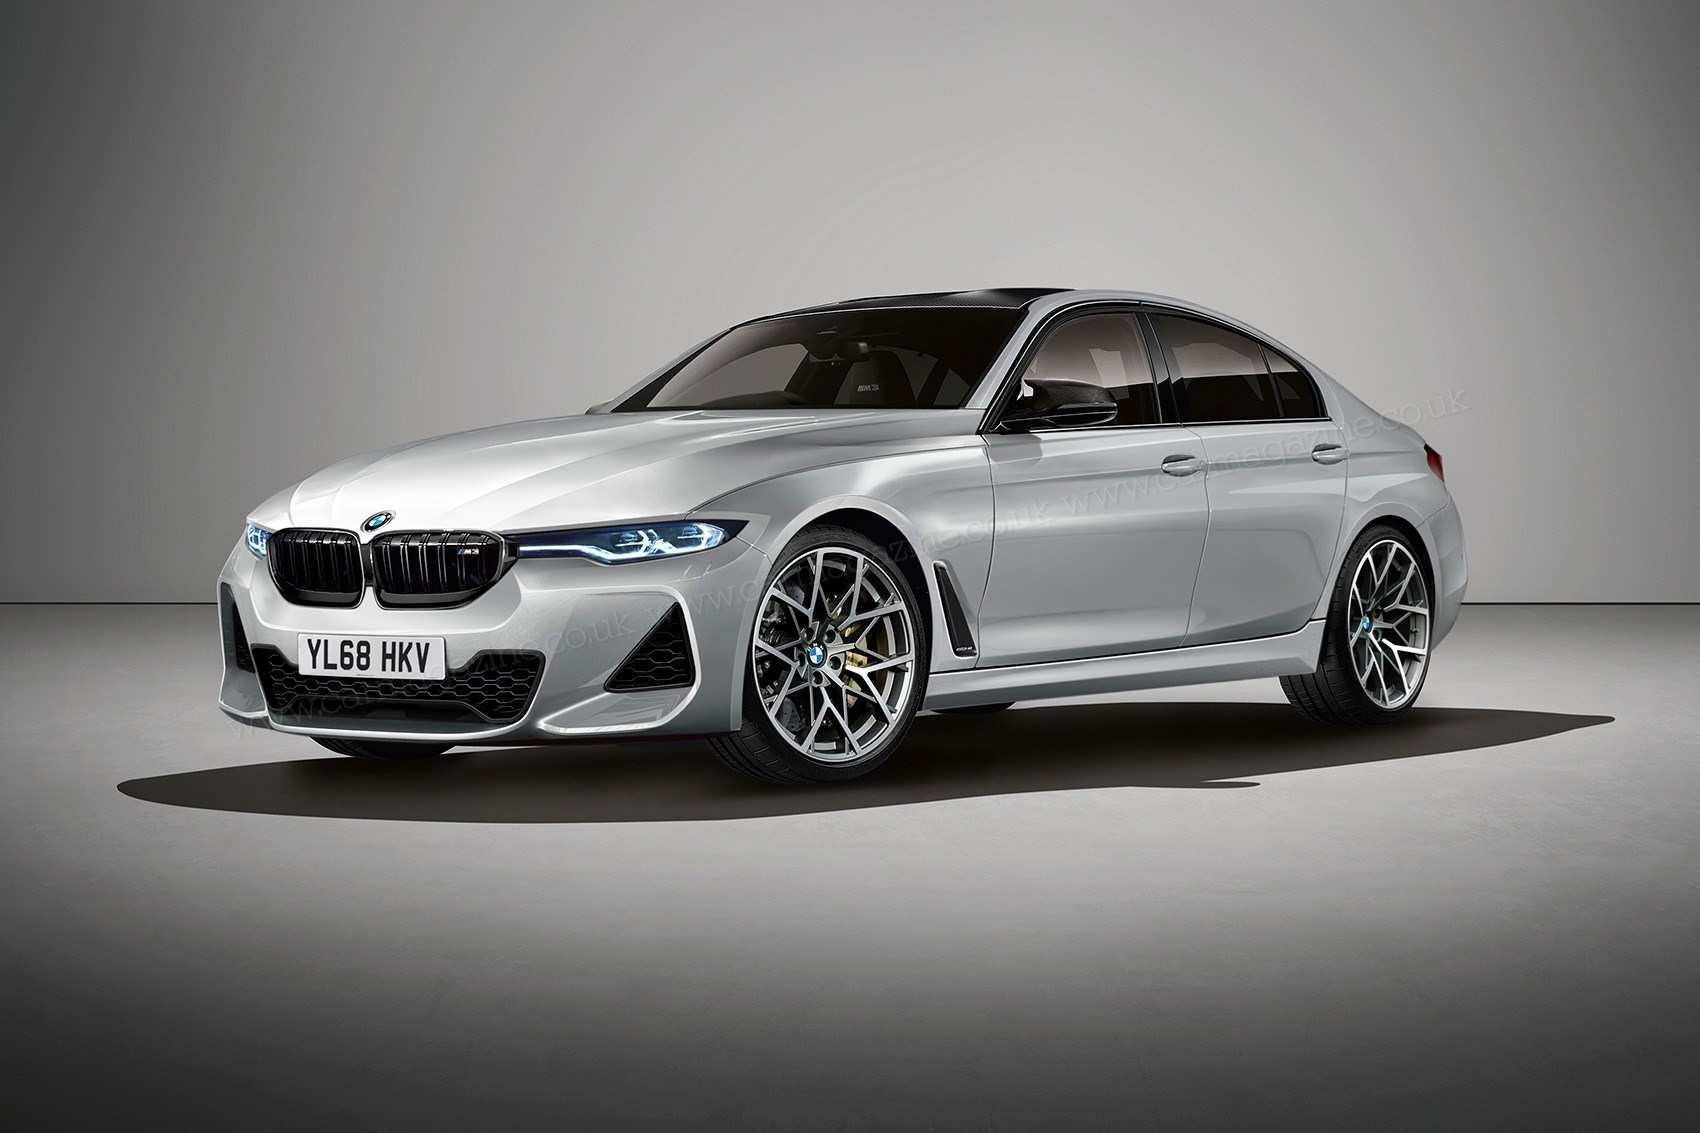 21 All New Bmw 4 Series 2020 Release Date First Drive